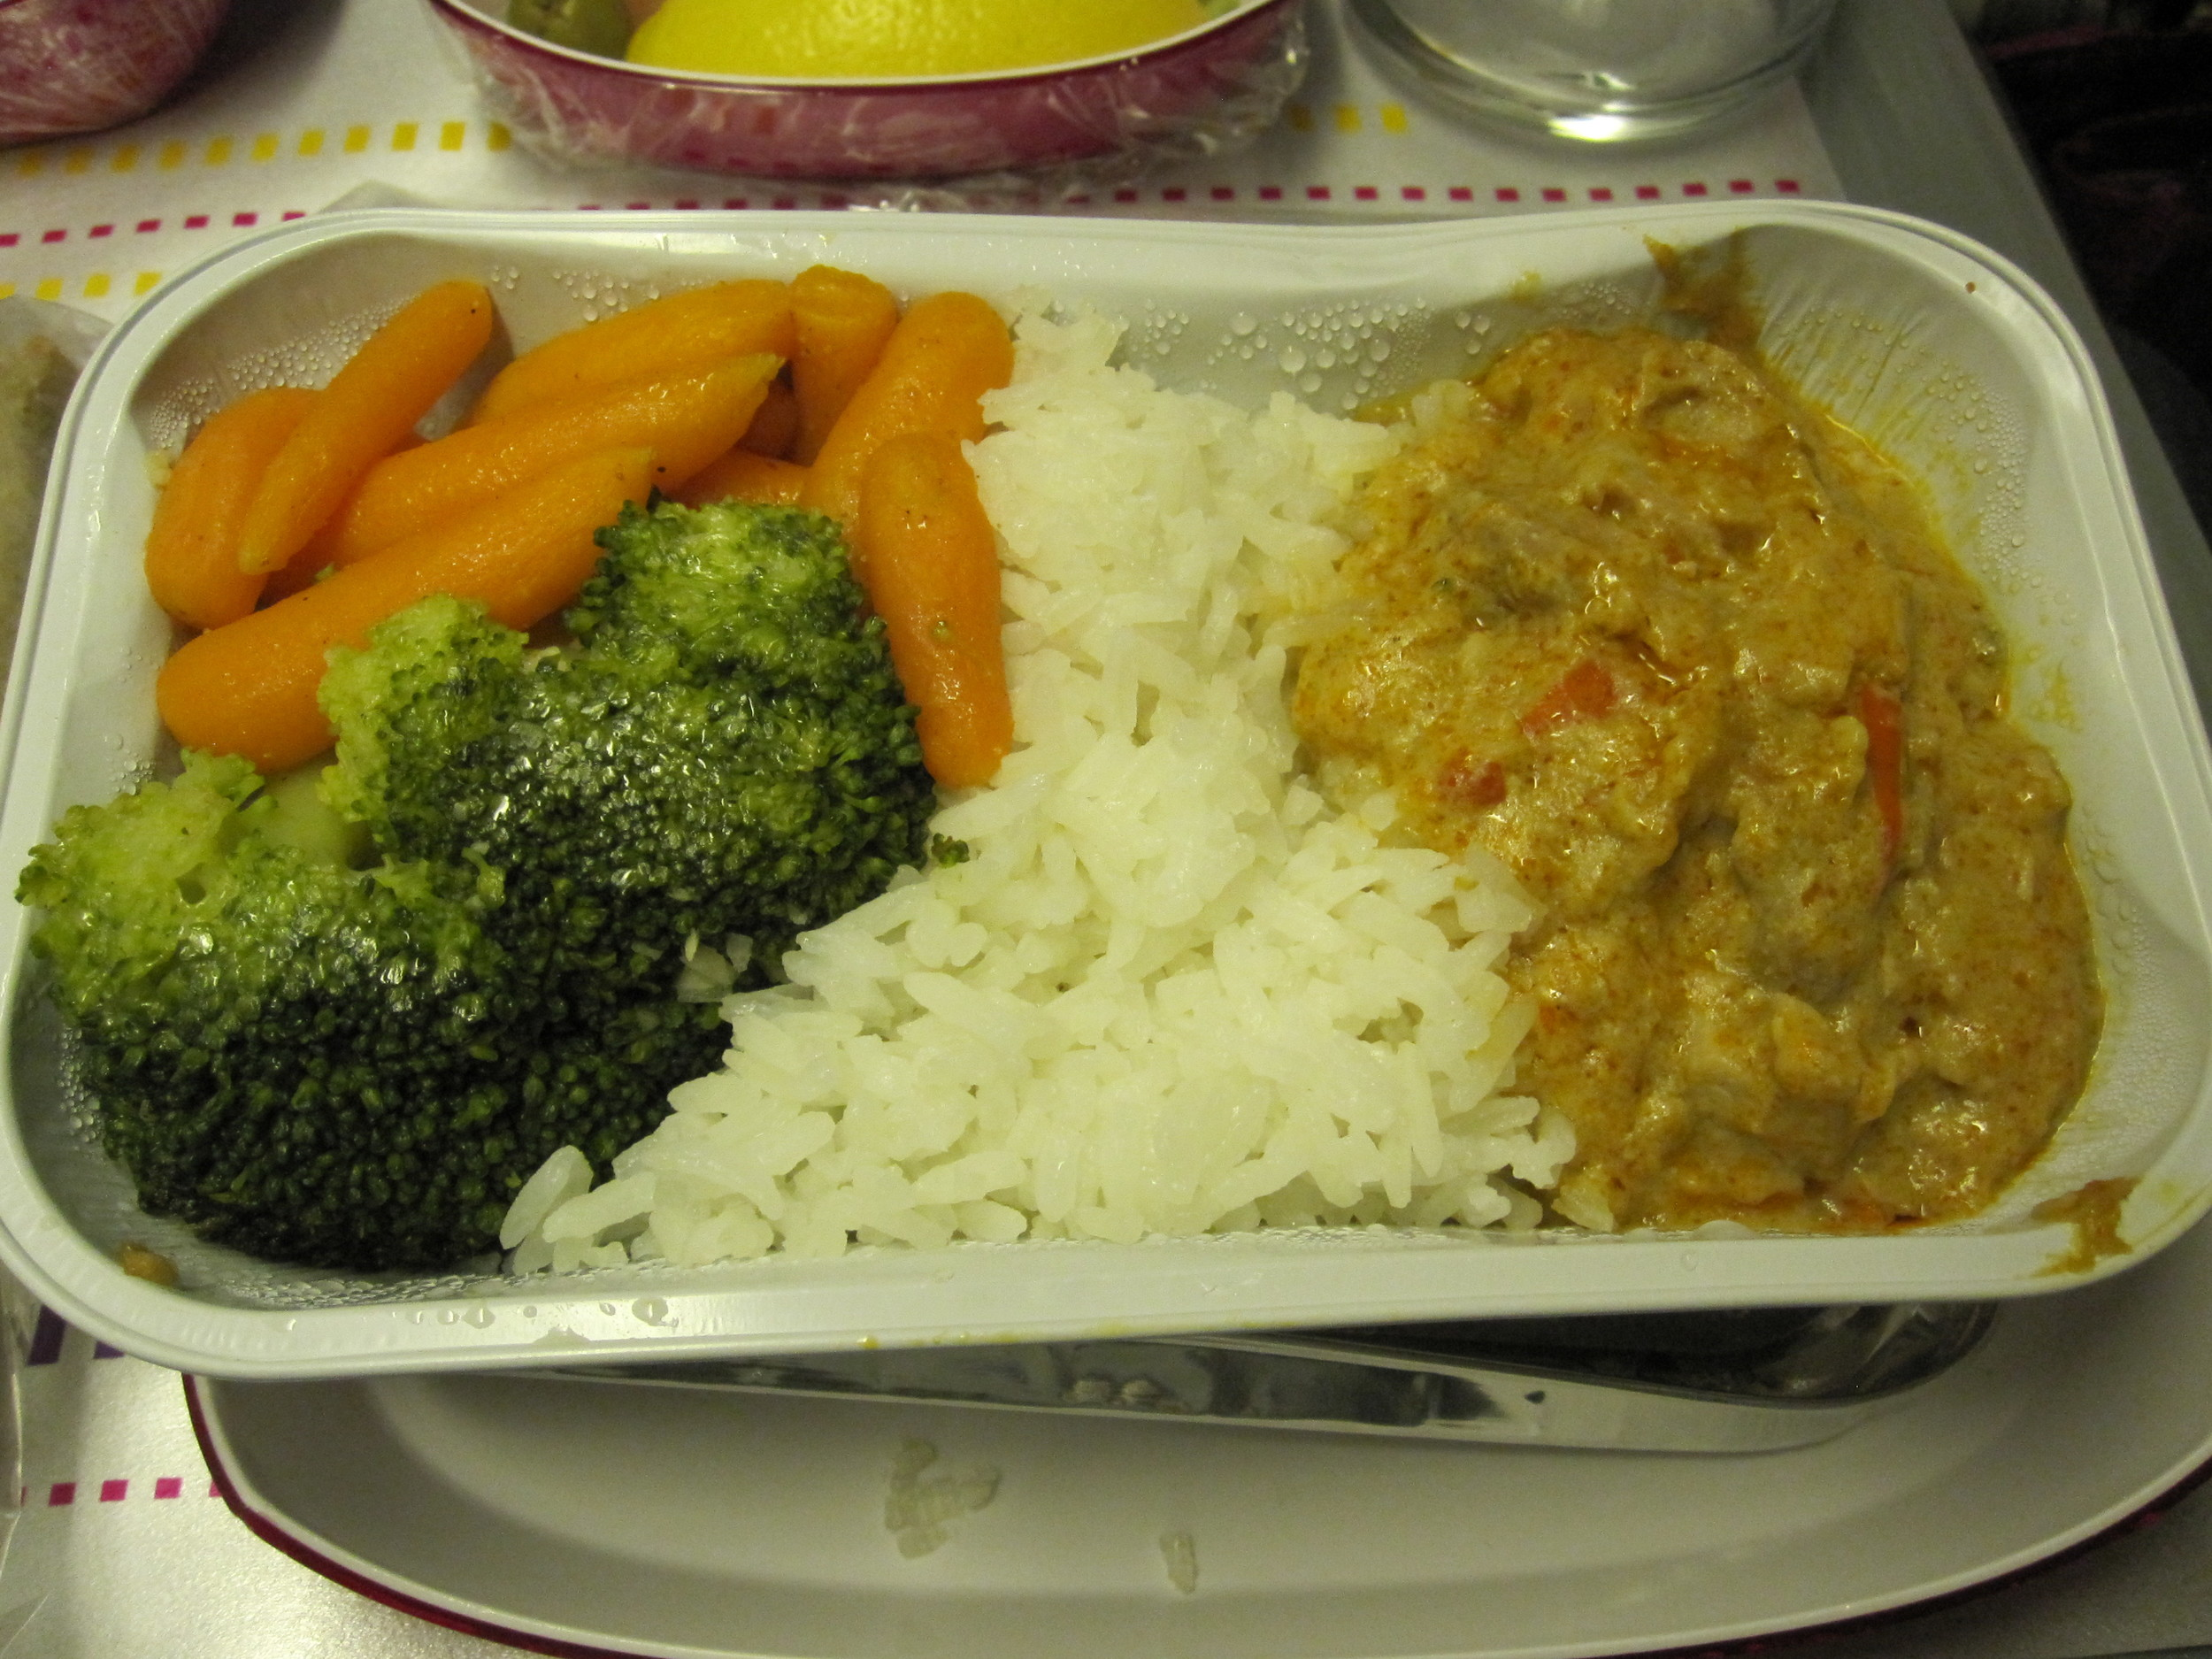 An introduction to Thai cuisine at 30,000ft